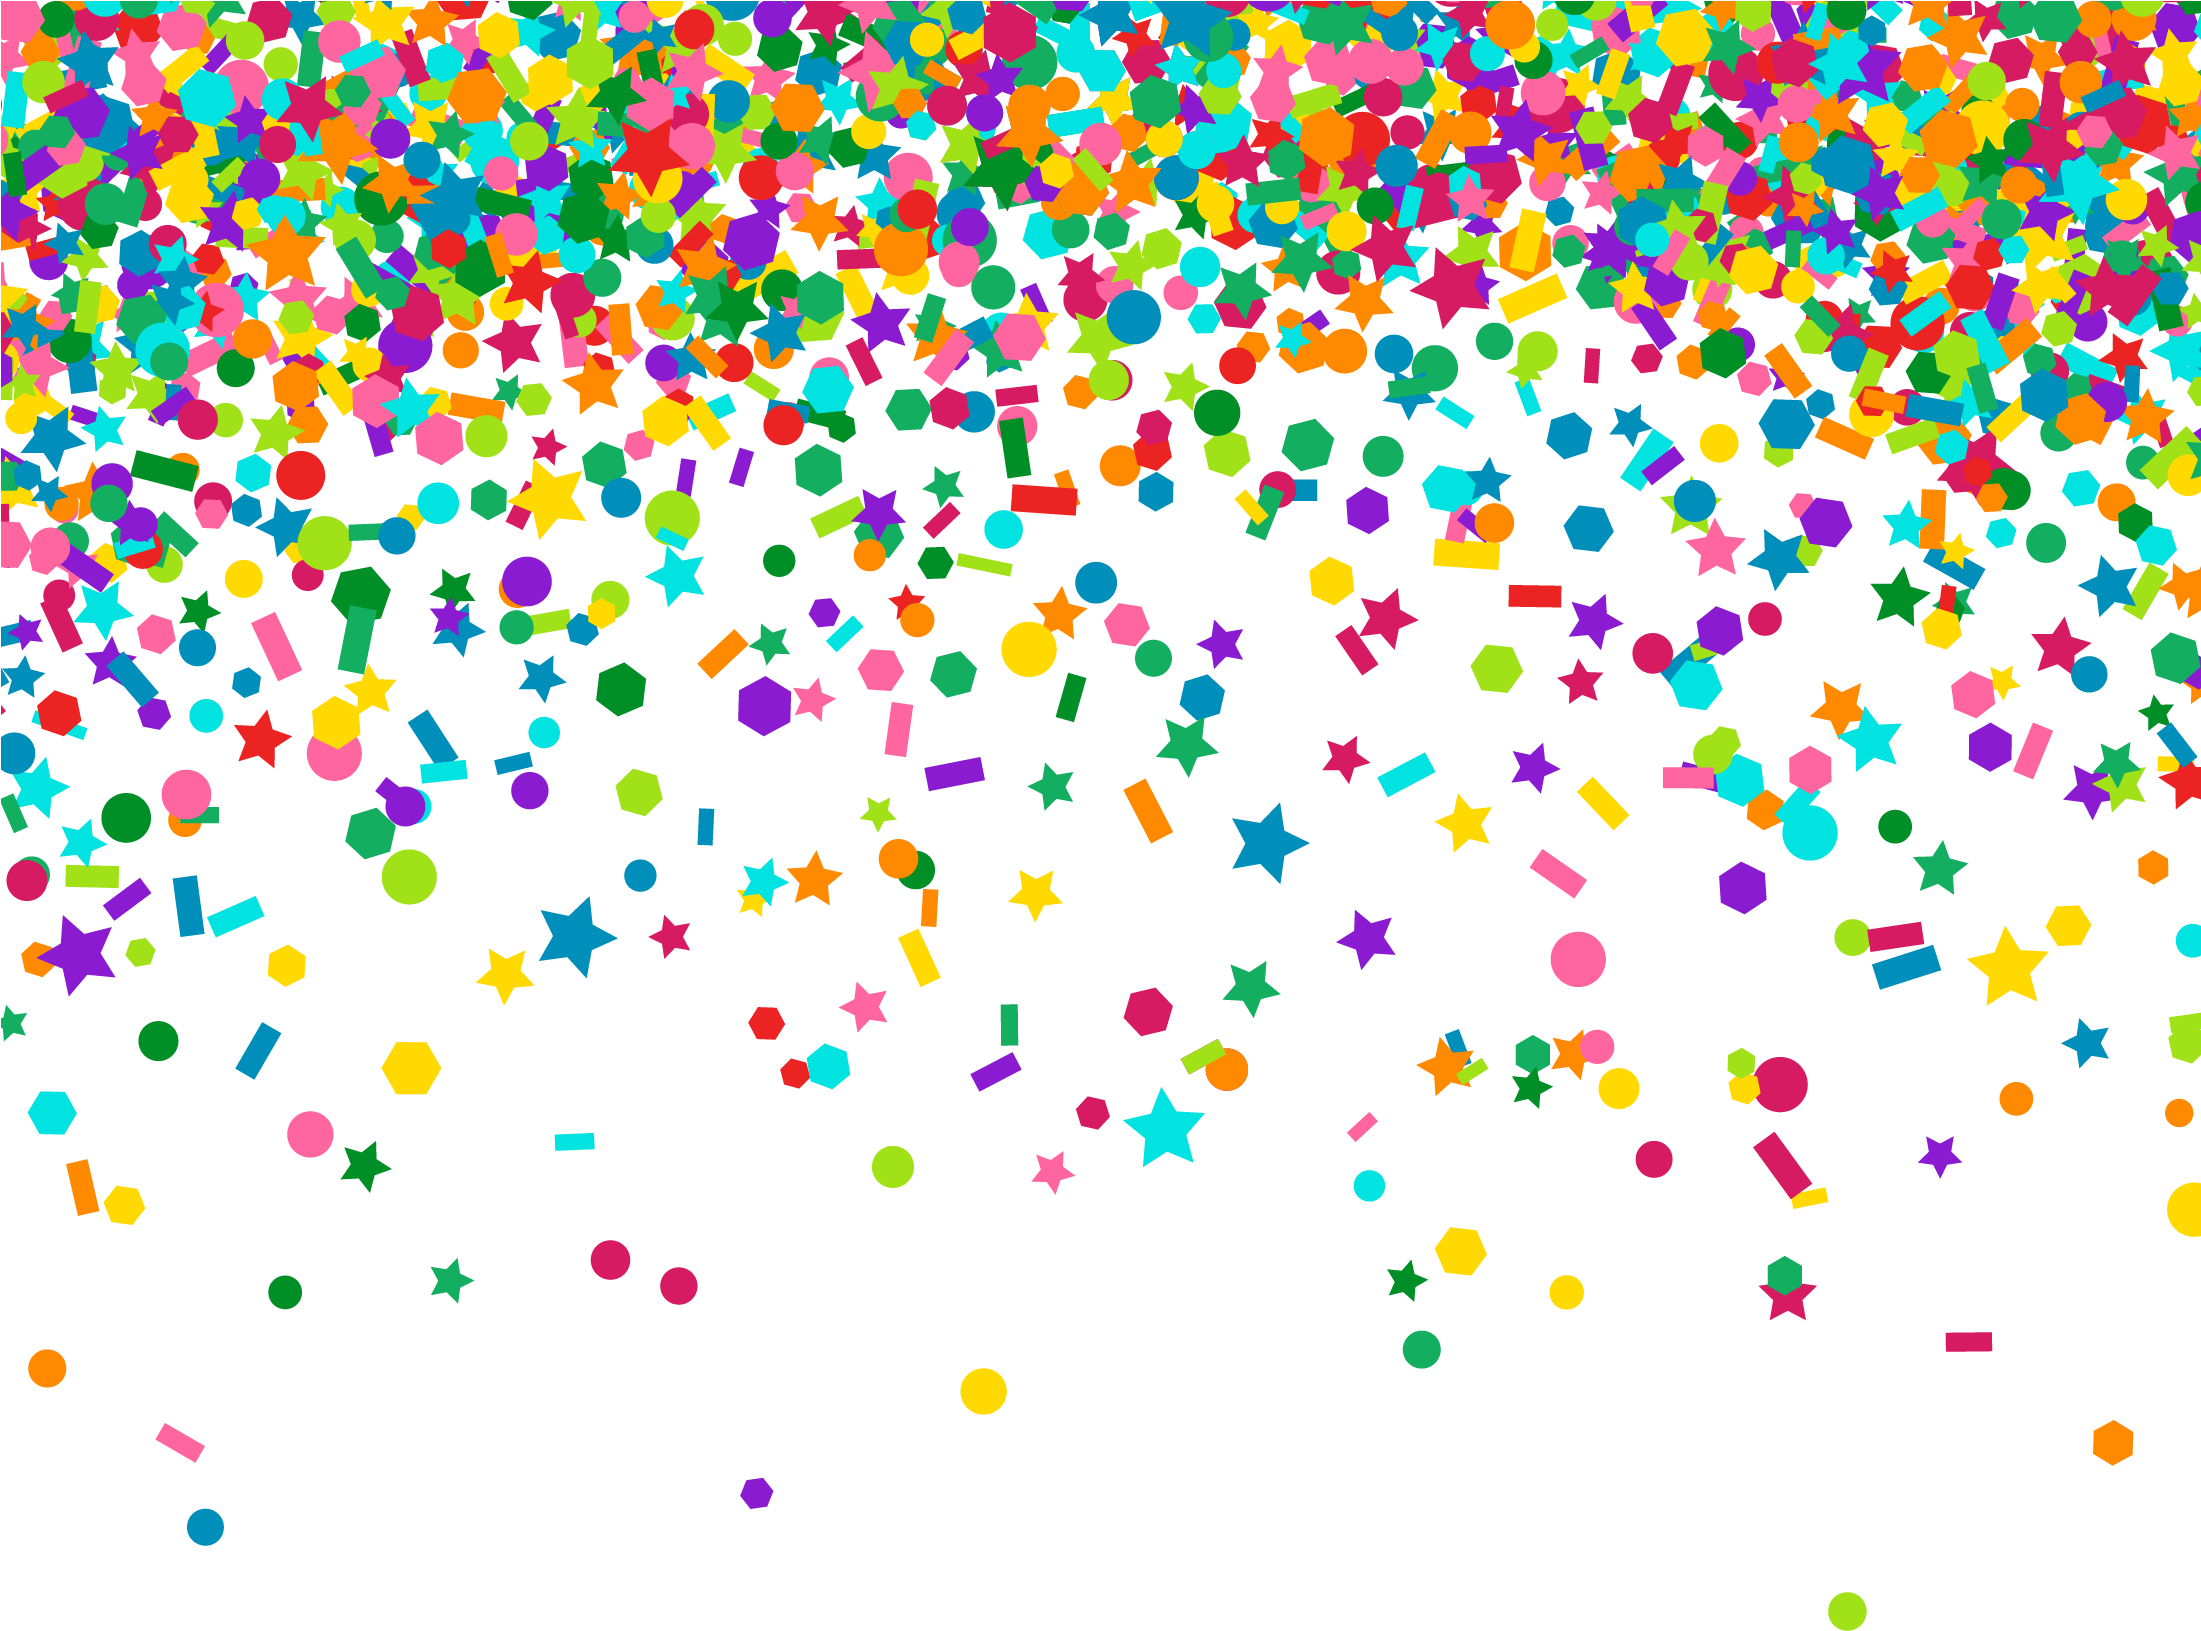 Falling confetti png. Download hd background dot